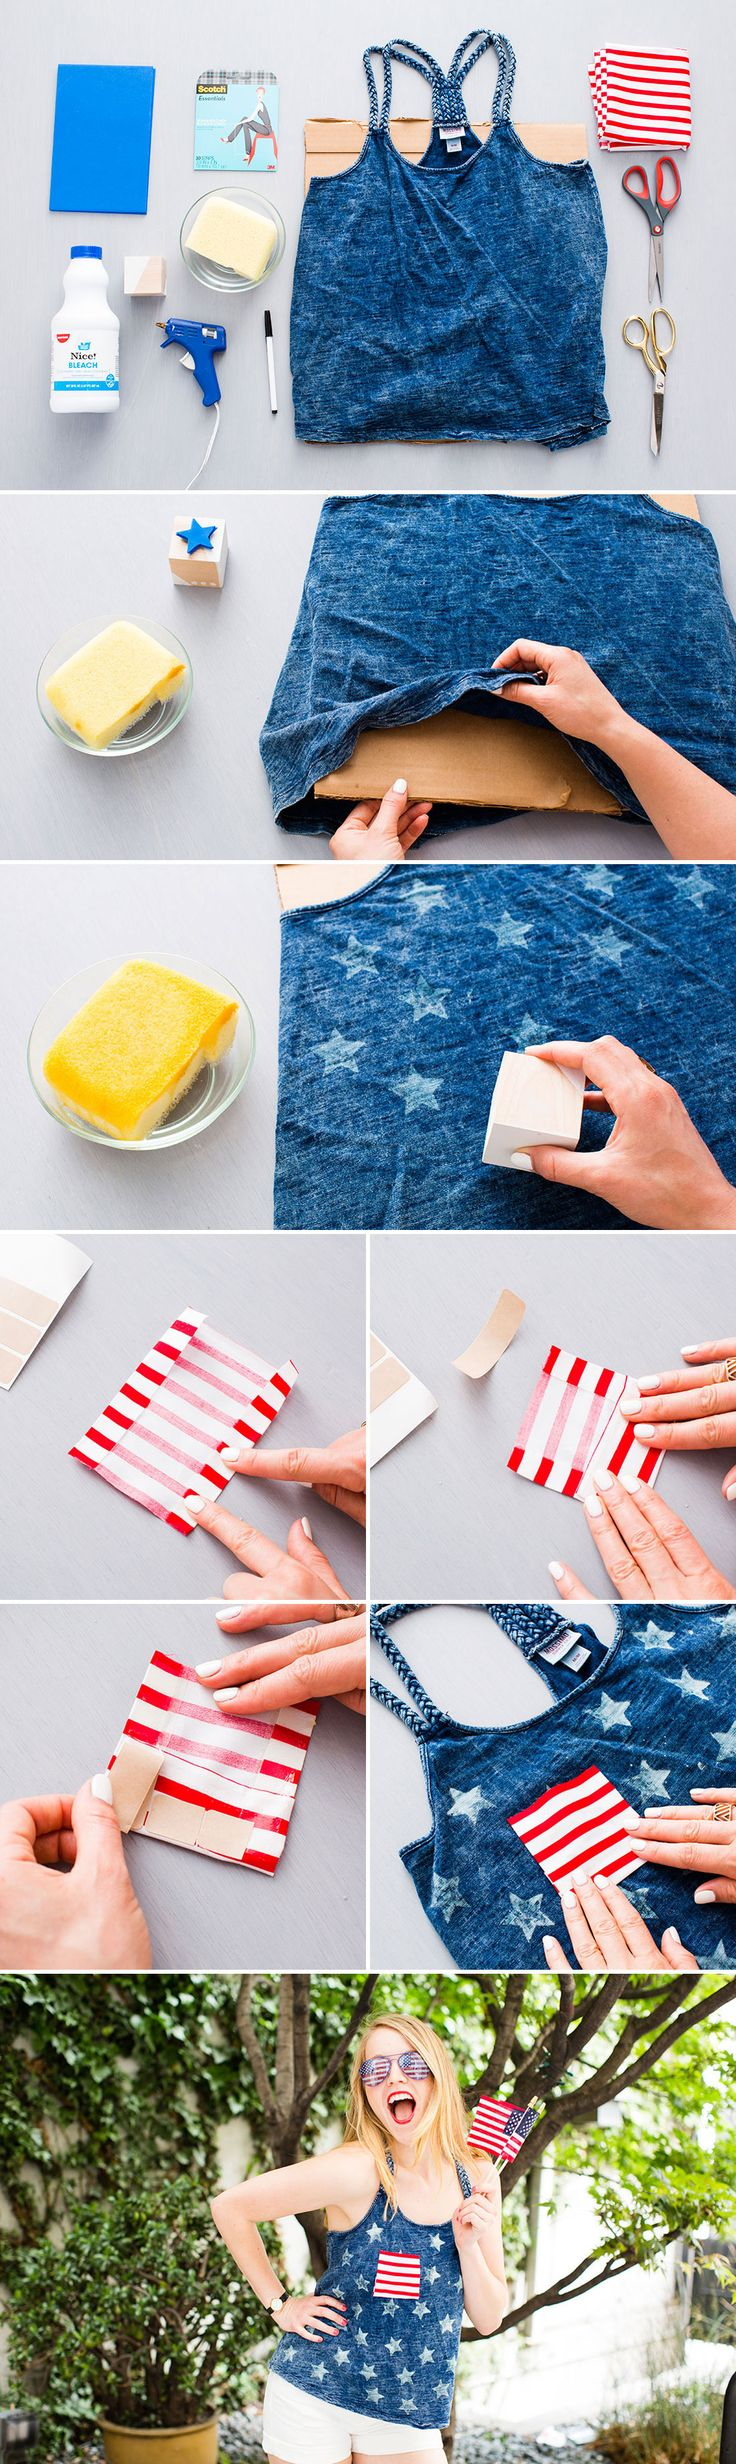 4th of July Food, Drink, Decoration and Outfit Ideas @ www.thriveorsurvive.us - This tank is simple to make and perfect for the 4th. 1. Create a star stamp using a foam sheet and wooden block. 2. Add bleach to the stamp and stamp shirt. 3. Make a pocket using striped fabric and permanent hem.